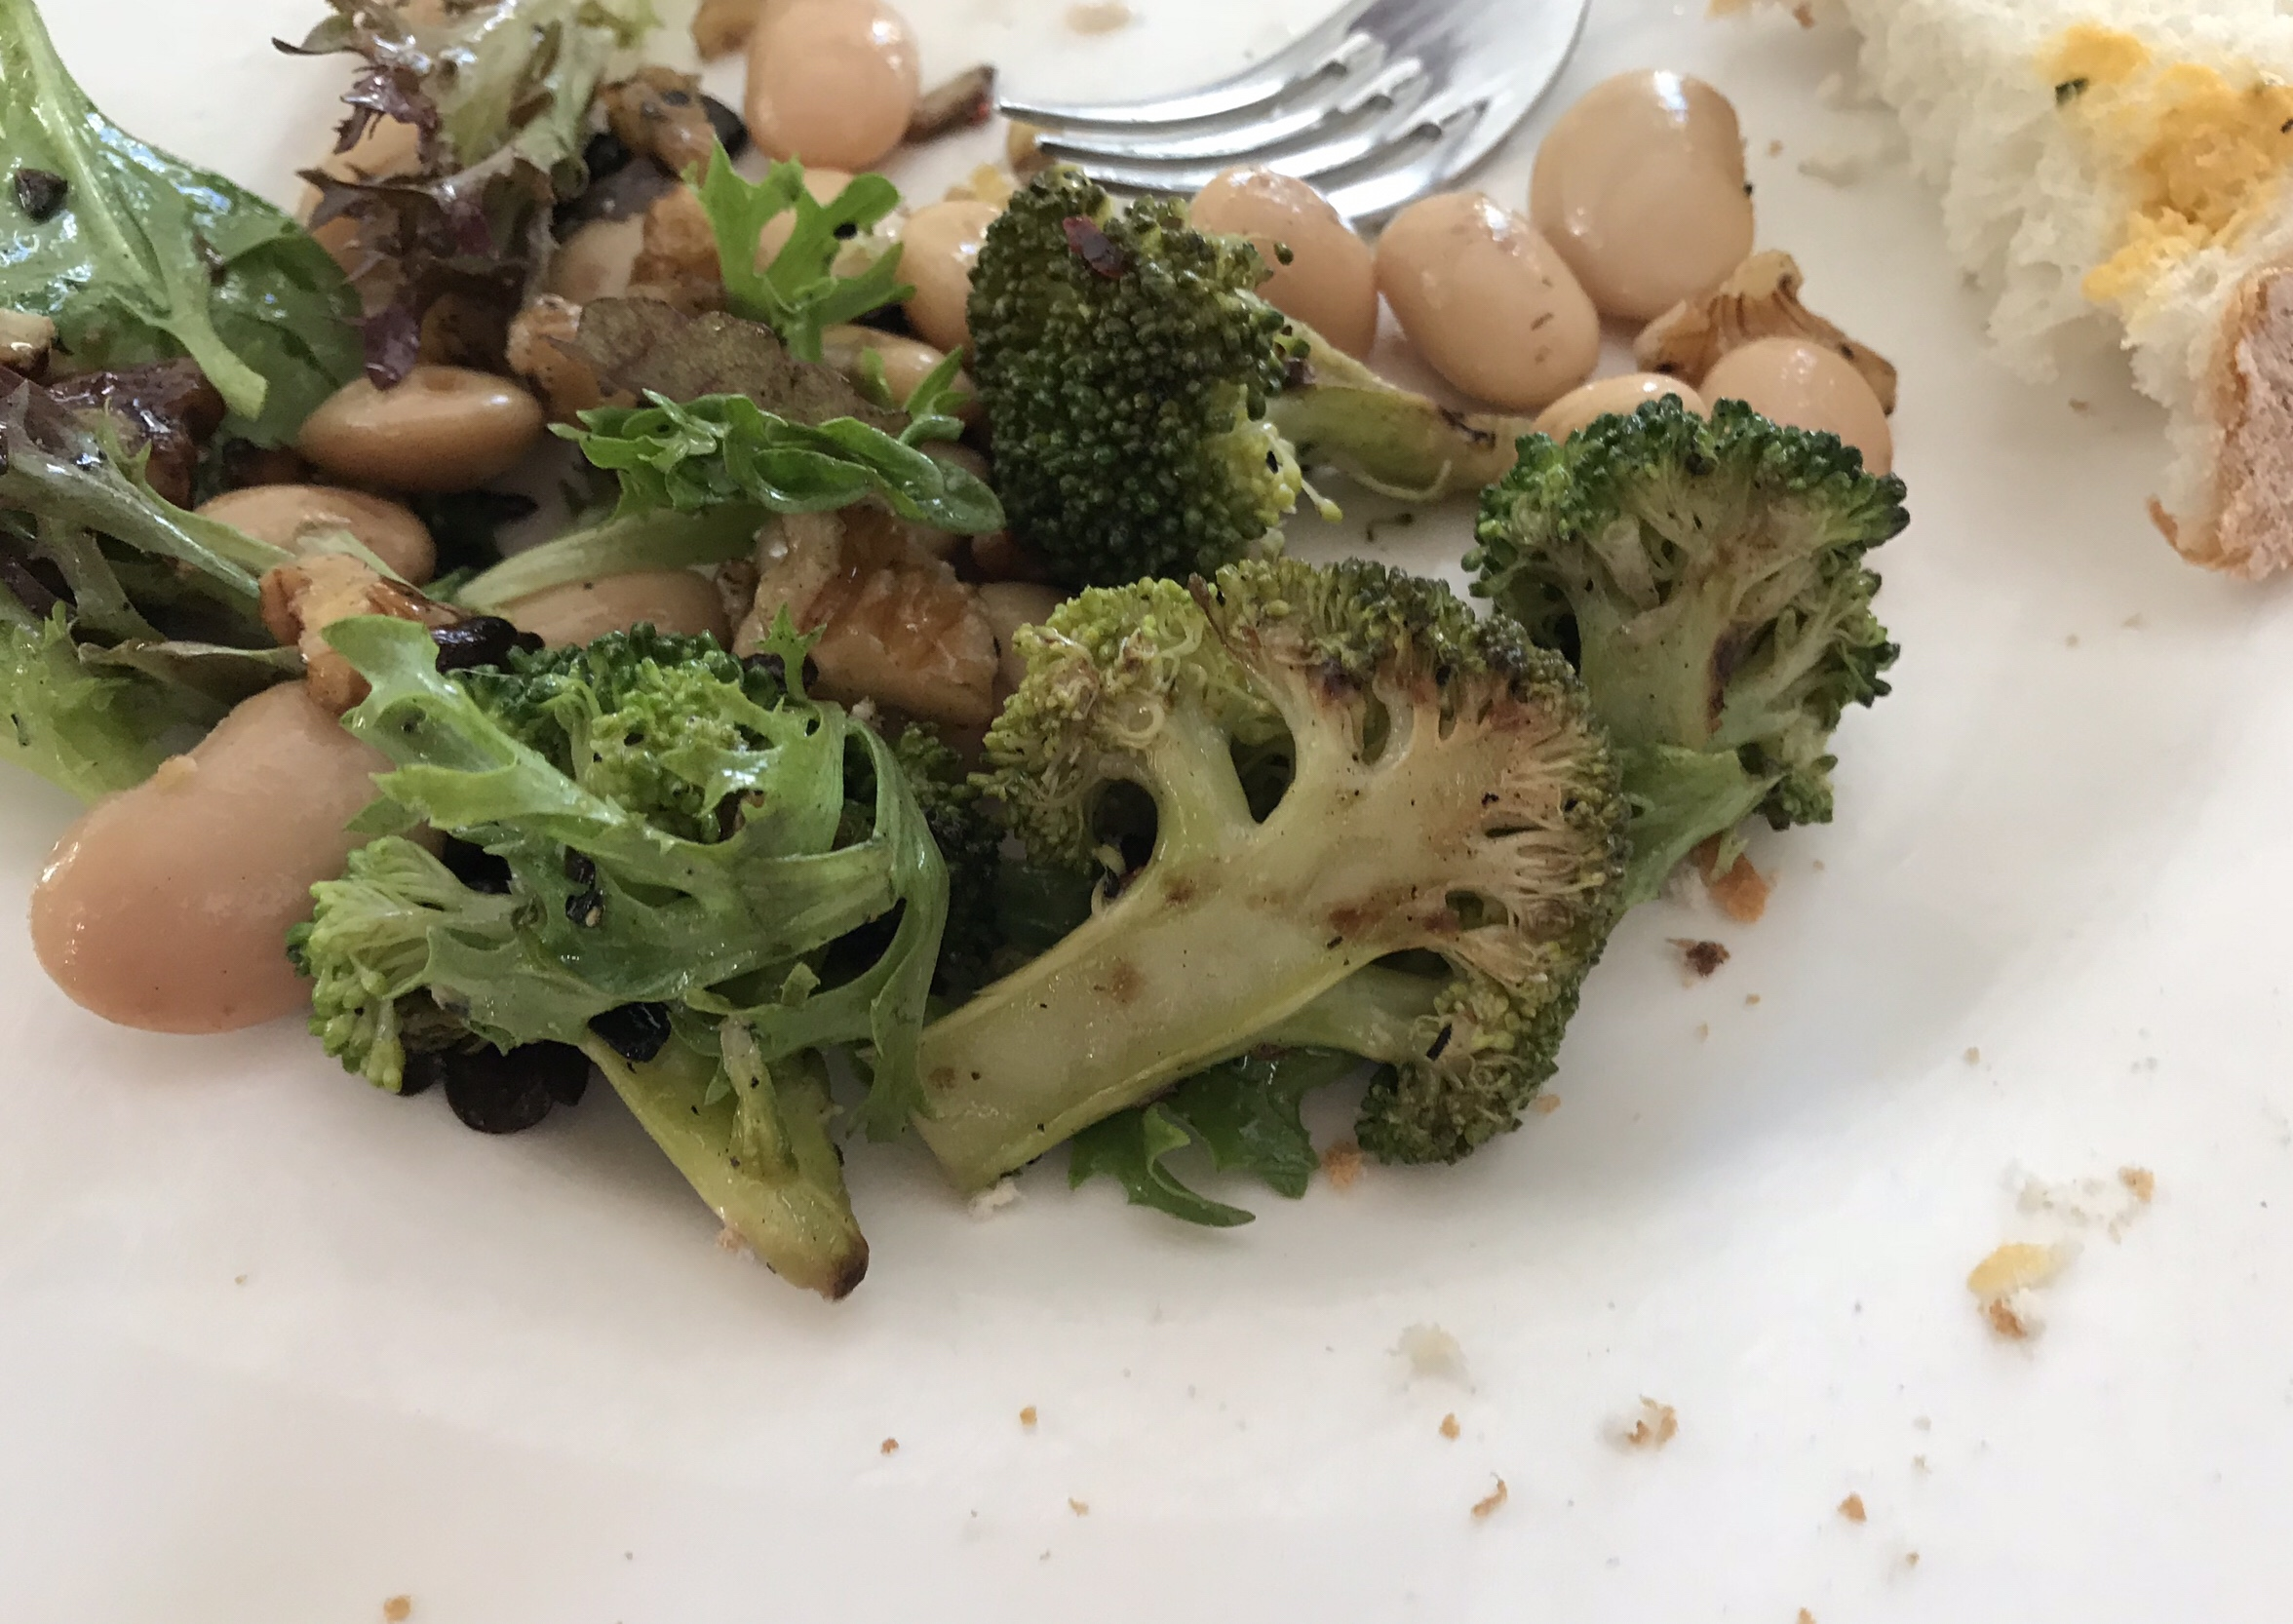 Chargrilled broccoli and butter bean salad